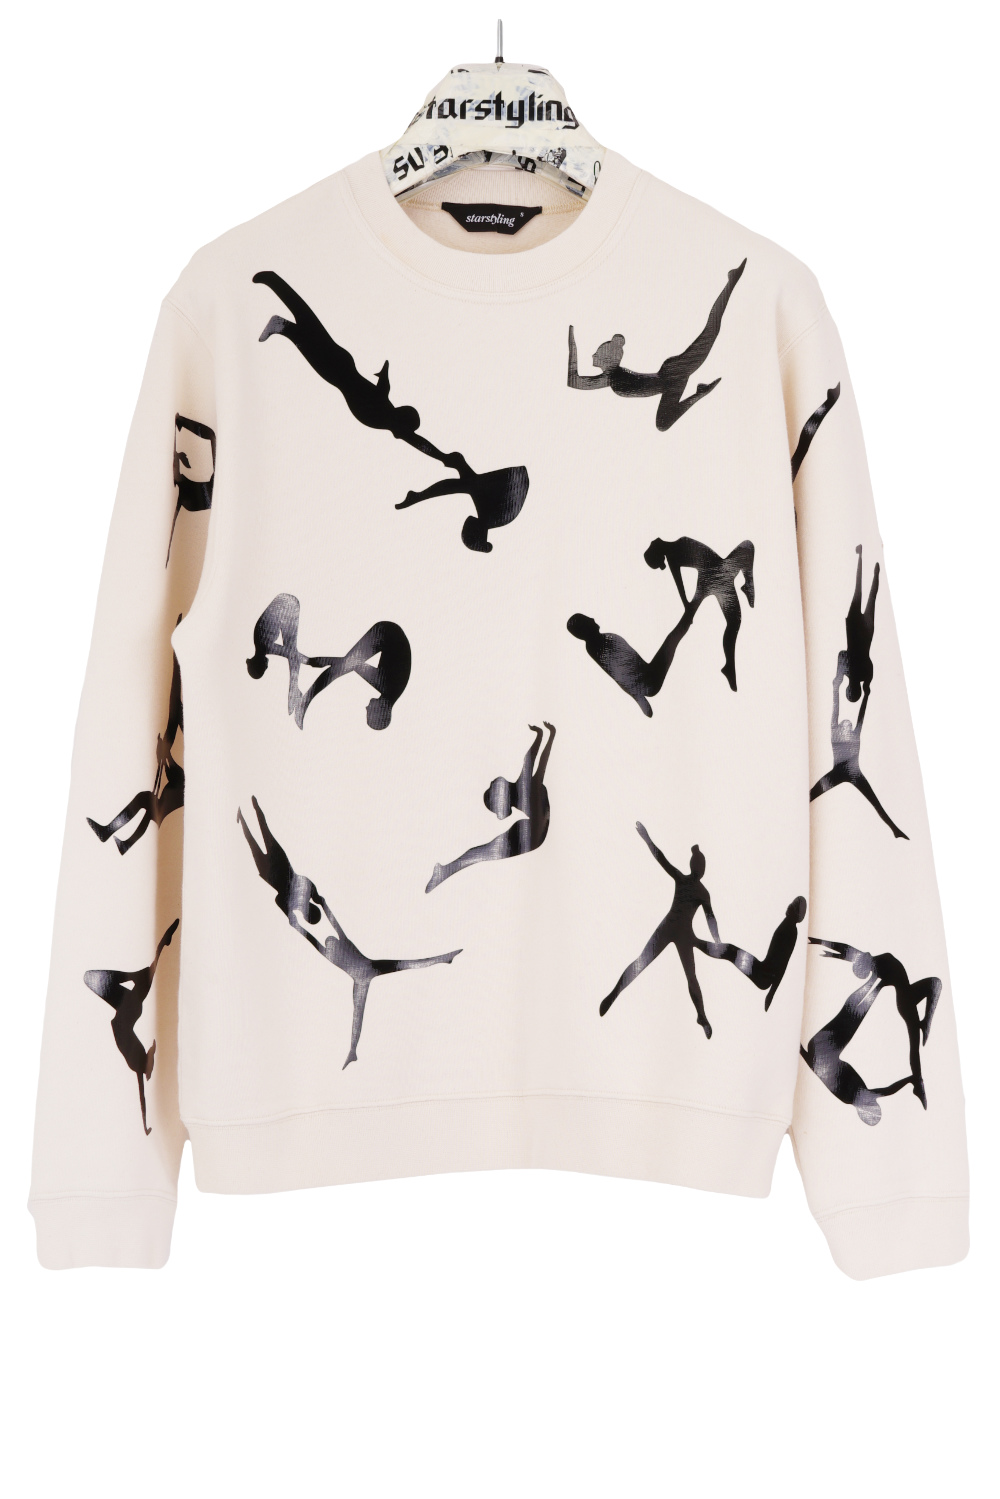 Acrobats Sweater - 0